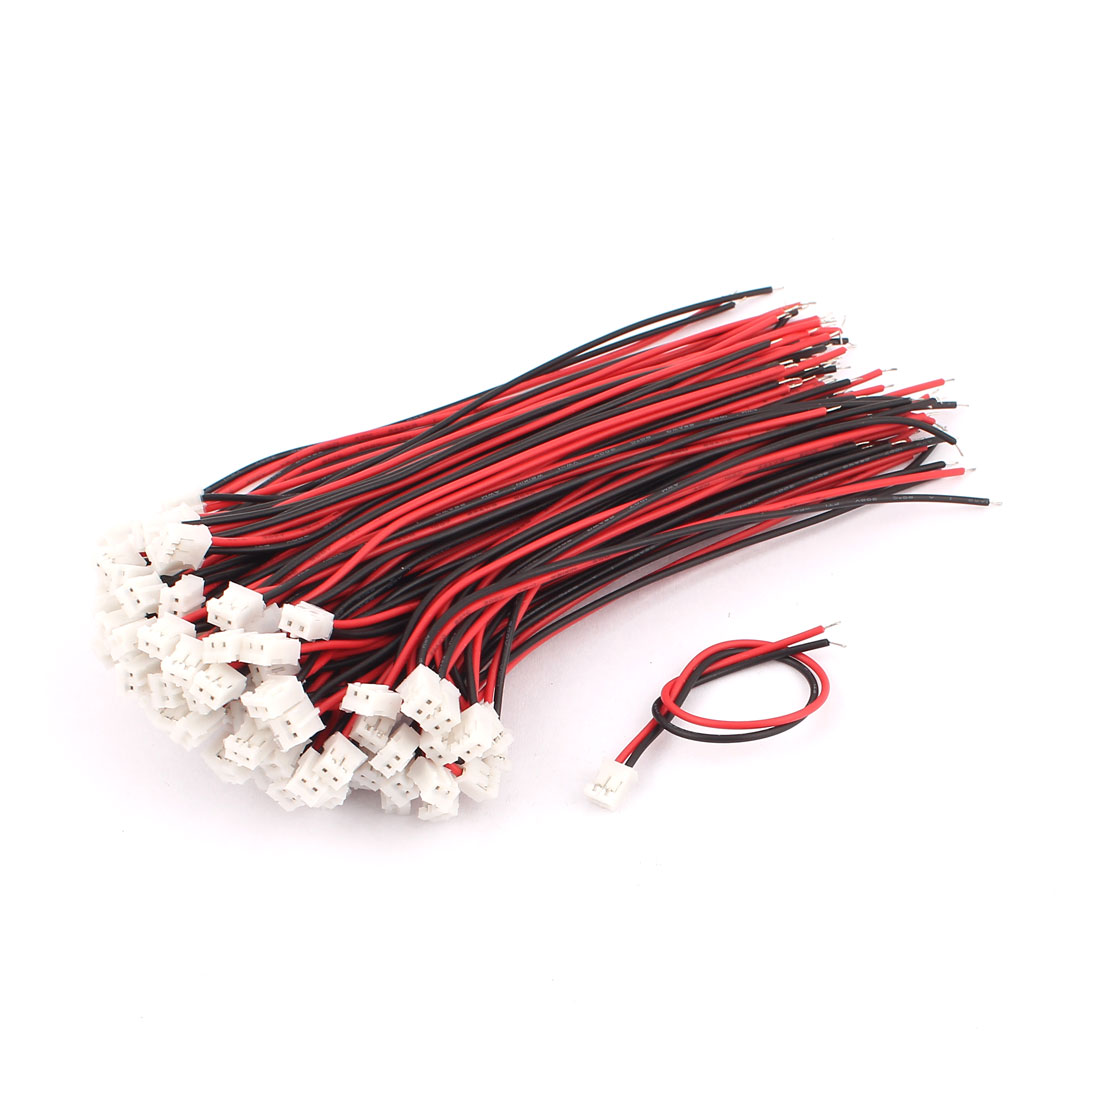 100 Pcs Red Black PCB Solder 120mm Tin JST Male to Female Connector Wire